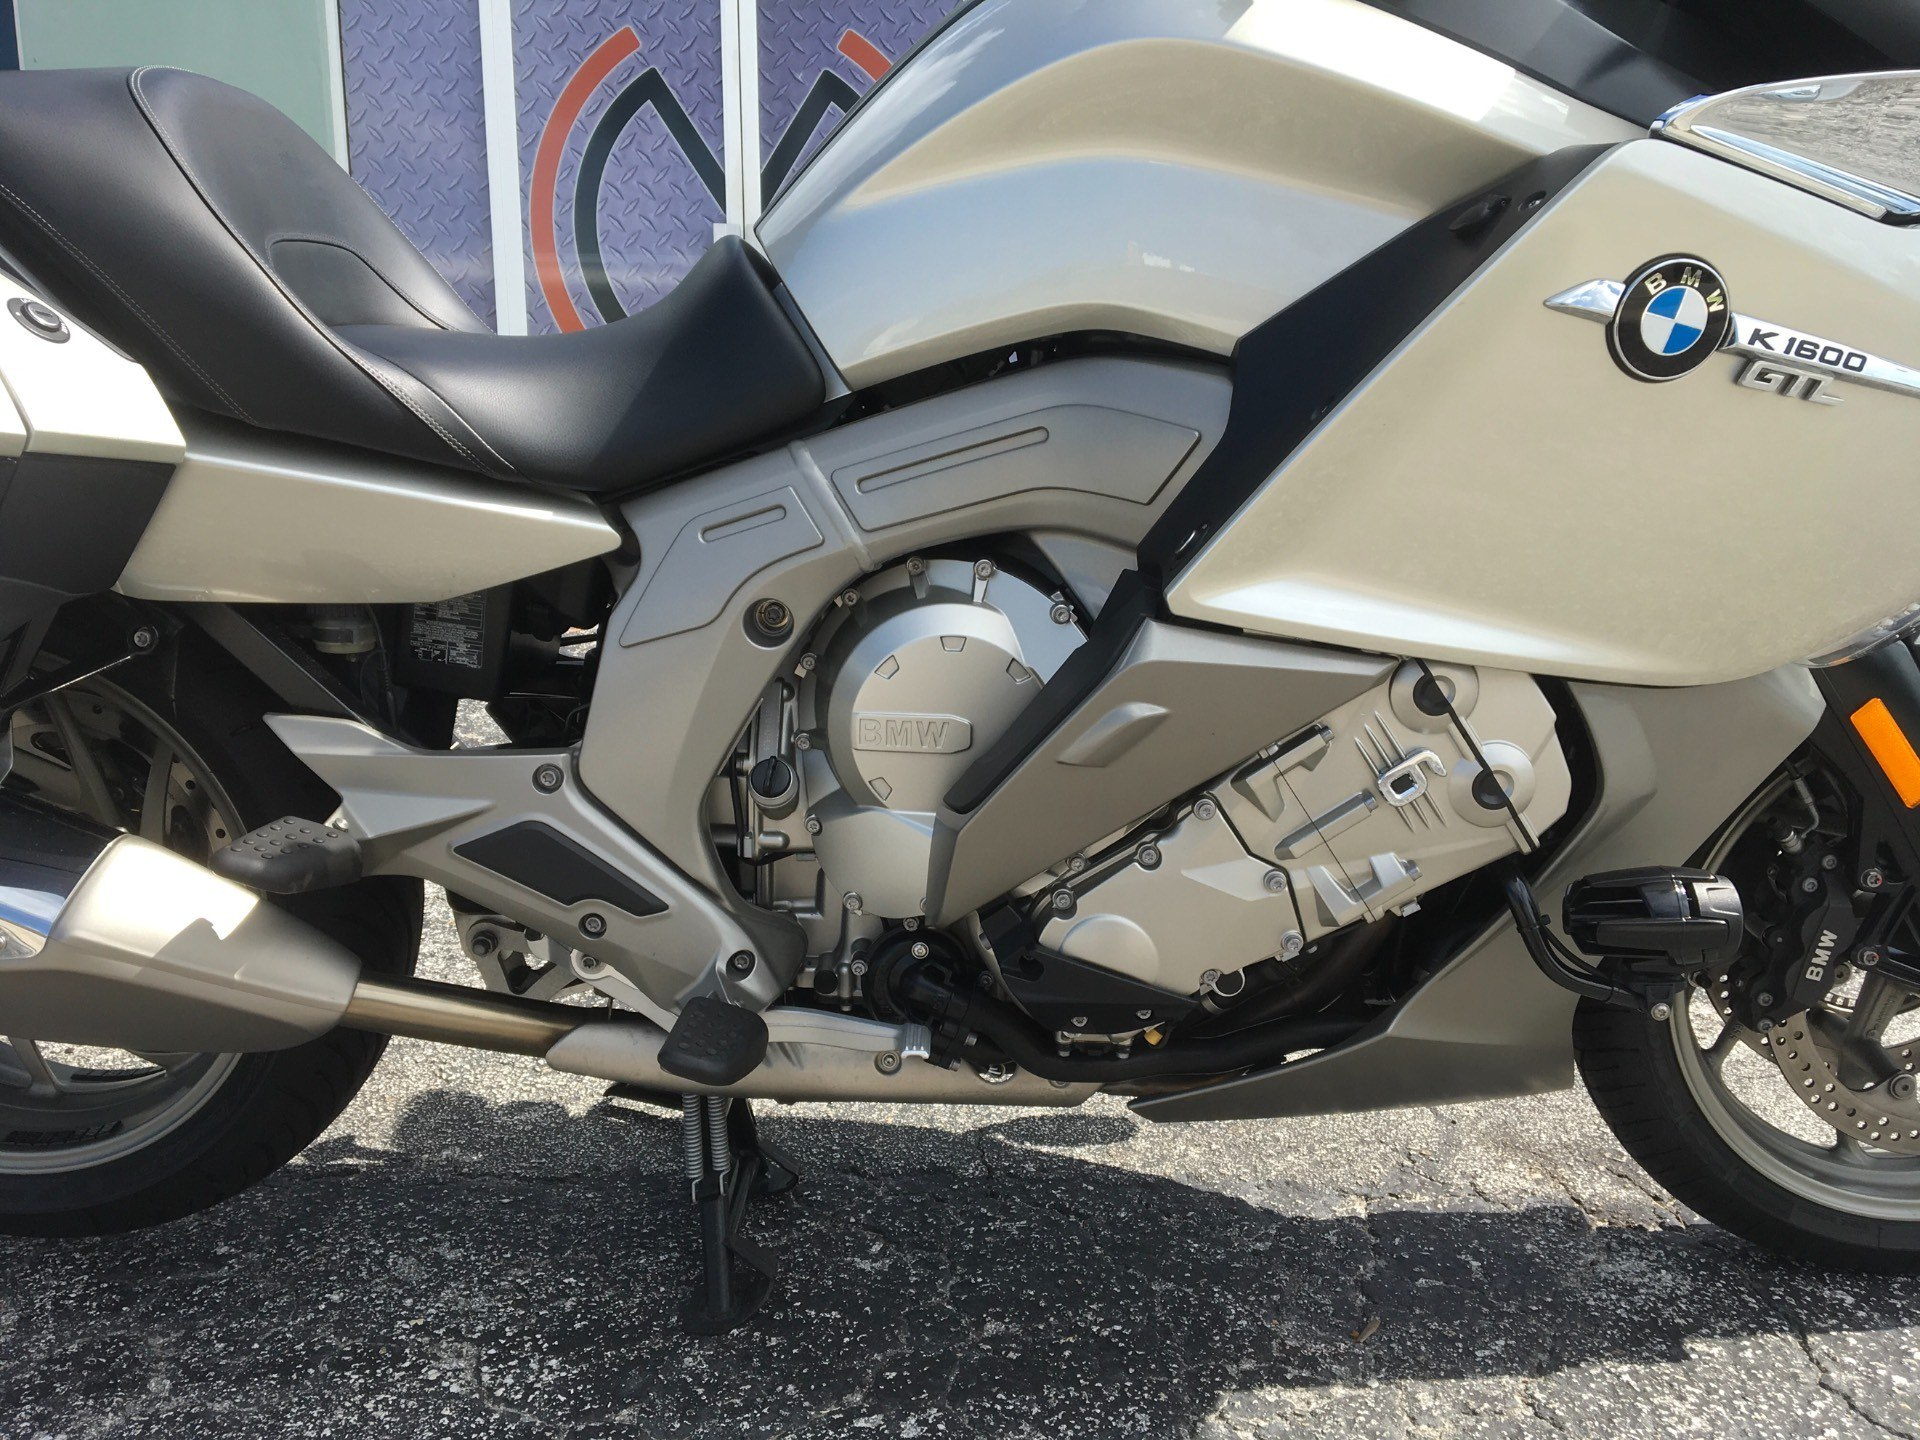 2012 BMW K1600 GTL in Cocoa, Florida - Photo 10